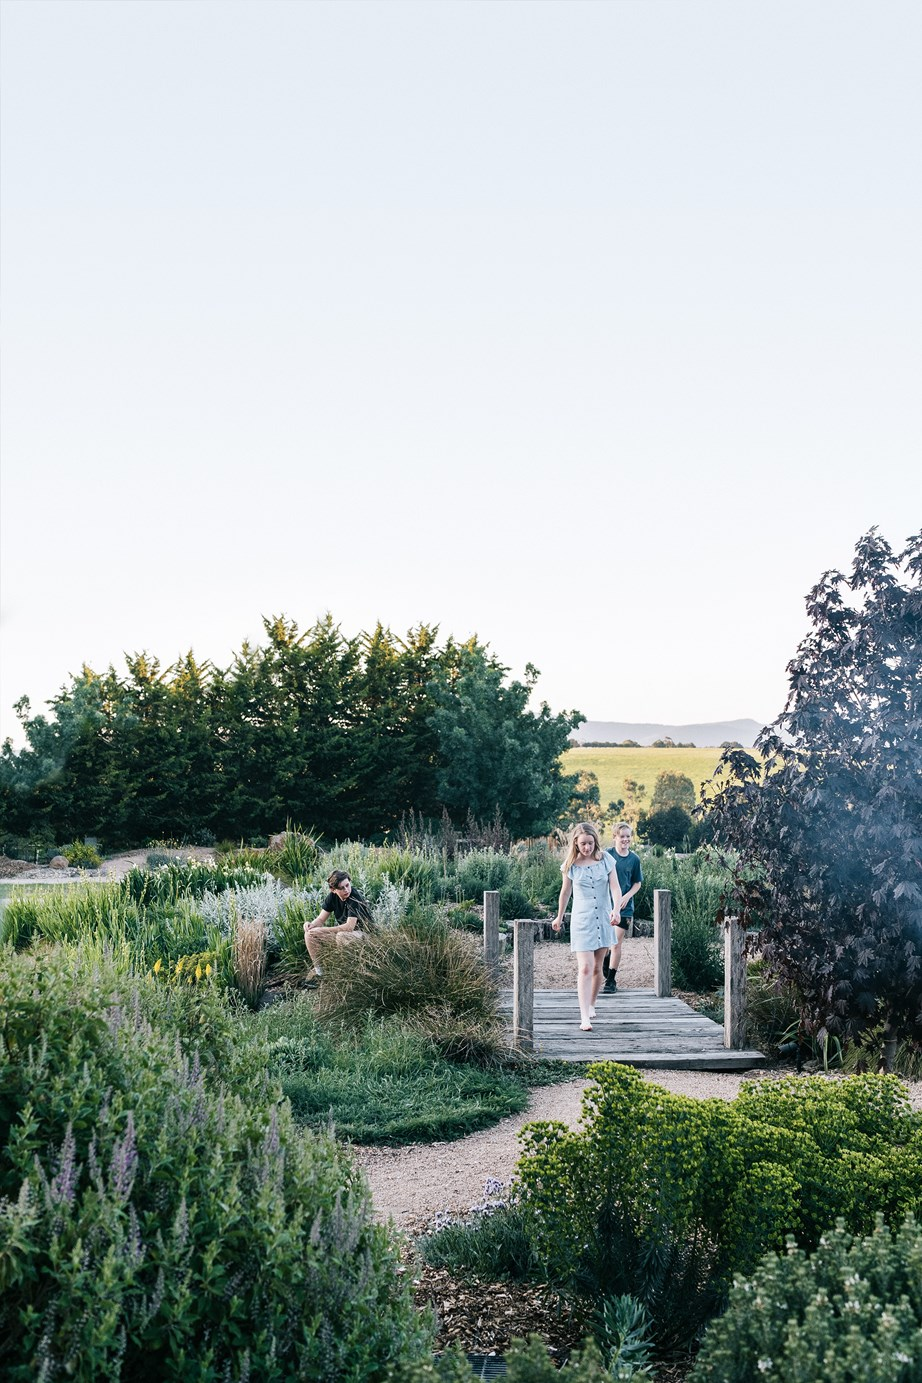 "Studying native plants and garden design led Kathleen Murphy to create a water-wise oasis at her home where clients can see her work firsthand. Her stunning [garden with panoramic views of the Macedon Ranges](https://www.homestolove.com.au/landscape-designer-kathleen-murphy-garden-gisborne-21086|target=""_blank"") features a variety of Australian native plants and a contemporary take on the latest in garden ideas and plantings."